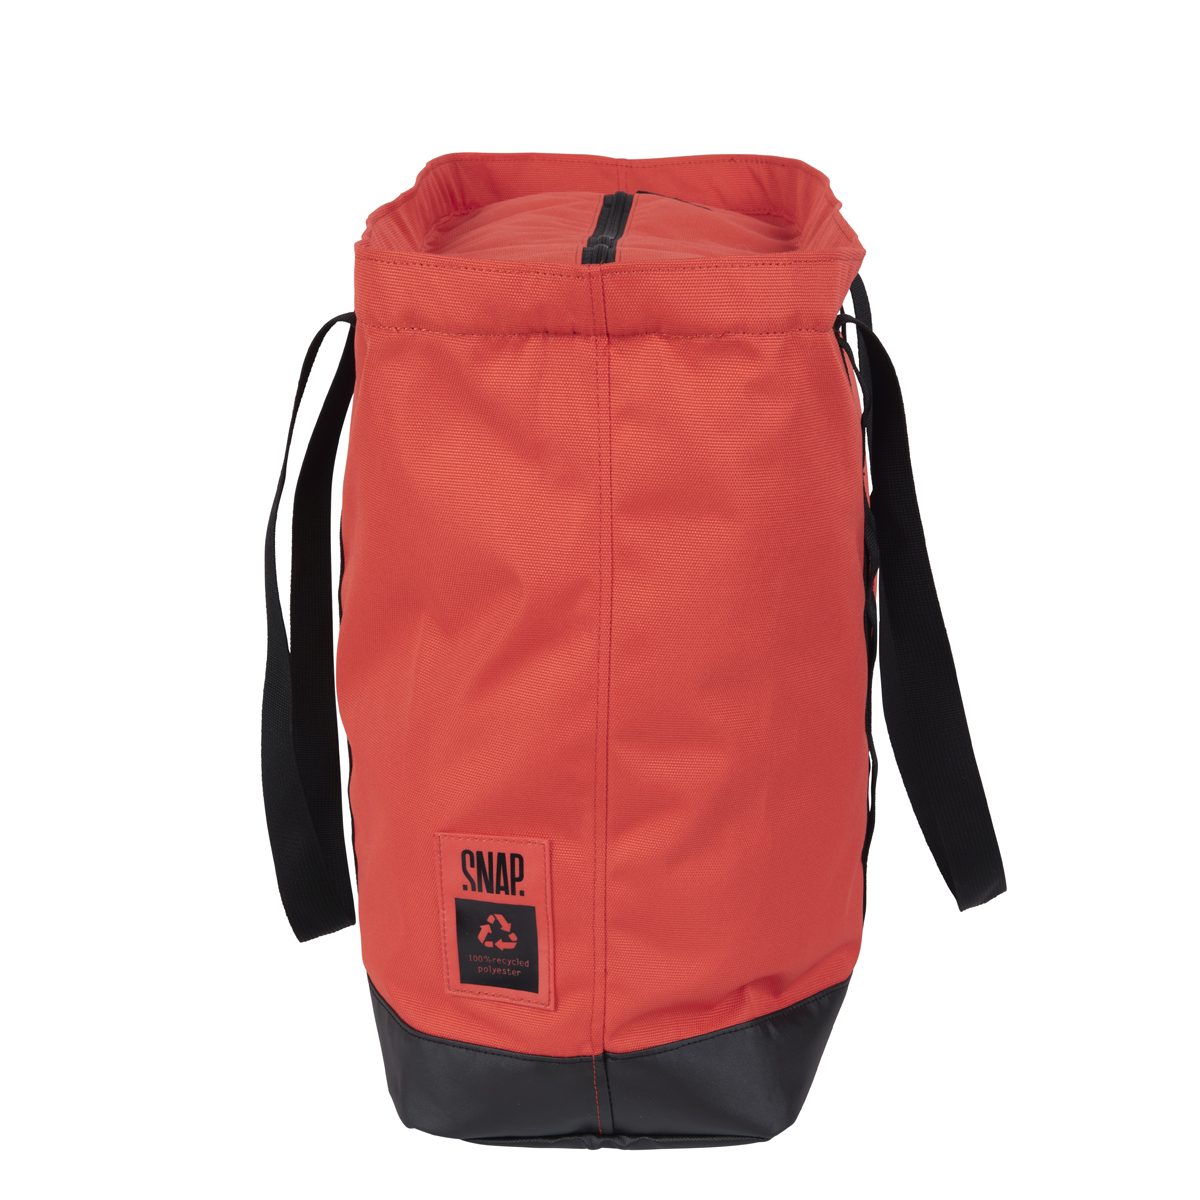 sports bag for woman